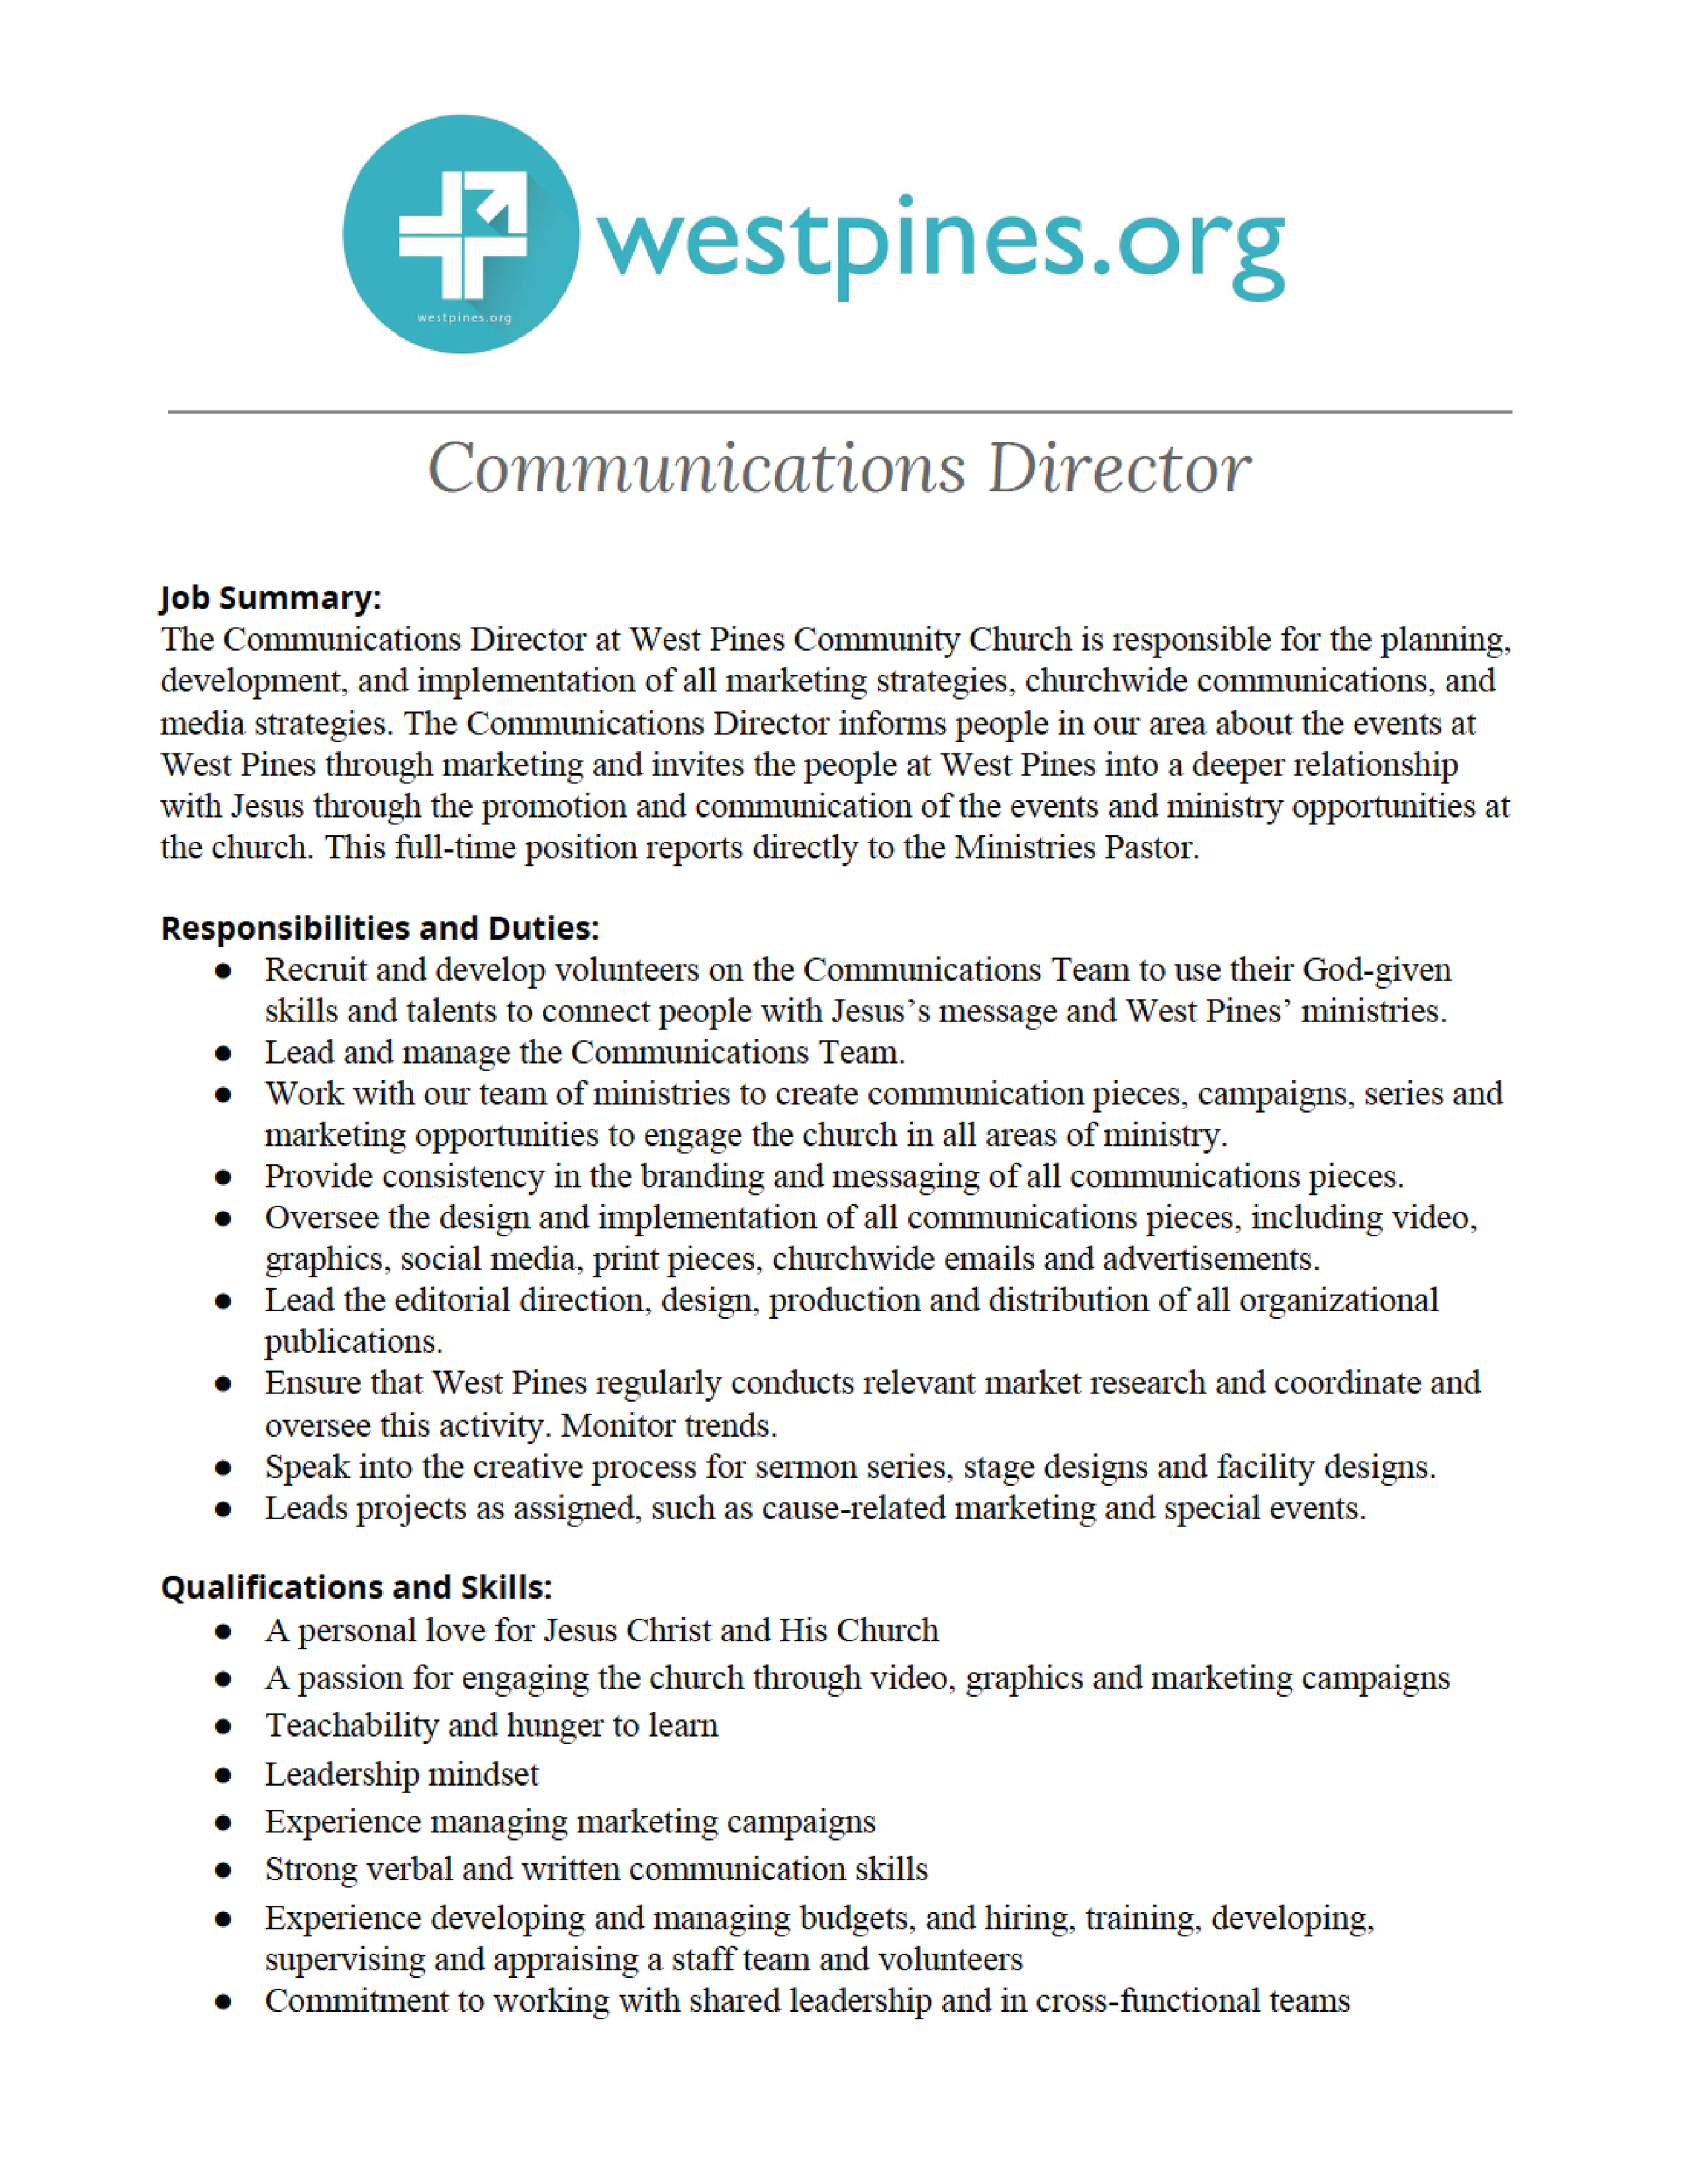 West Pines Communications Director Job Opening.png